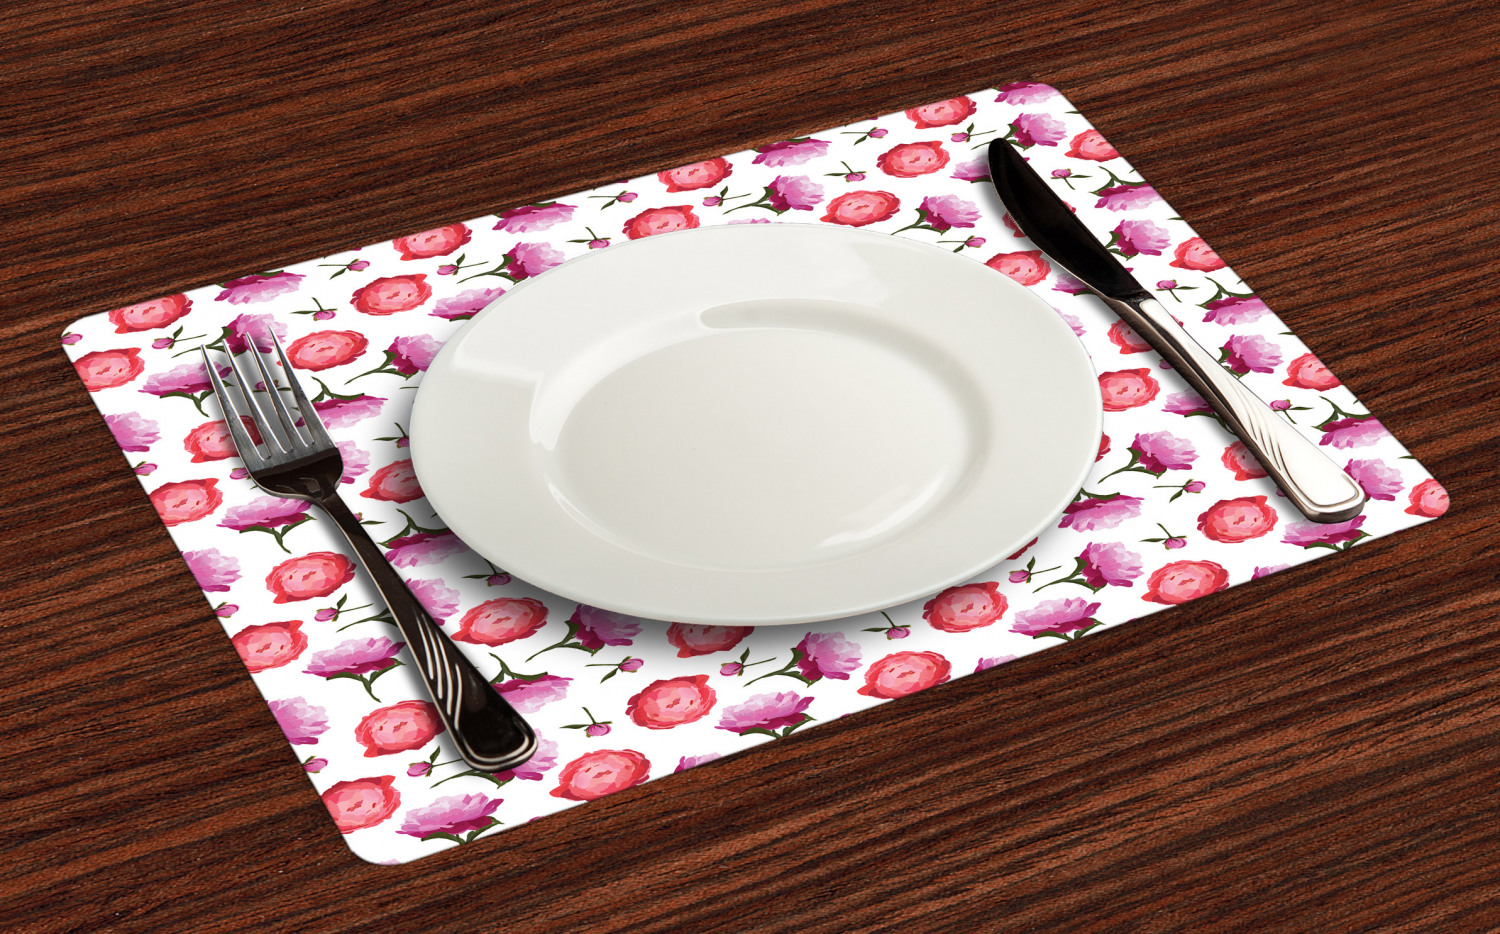 Ambesonne-Flower-Pattern-Placemat-Set-of-4-Fabric-Place-Mats-for-Table-Decor thumbnail 173